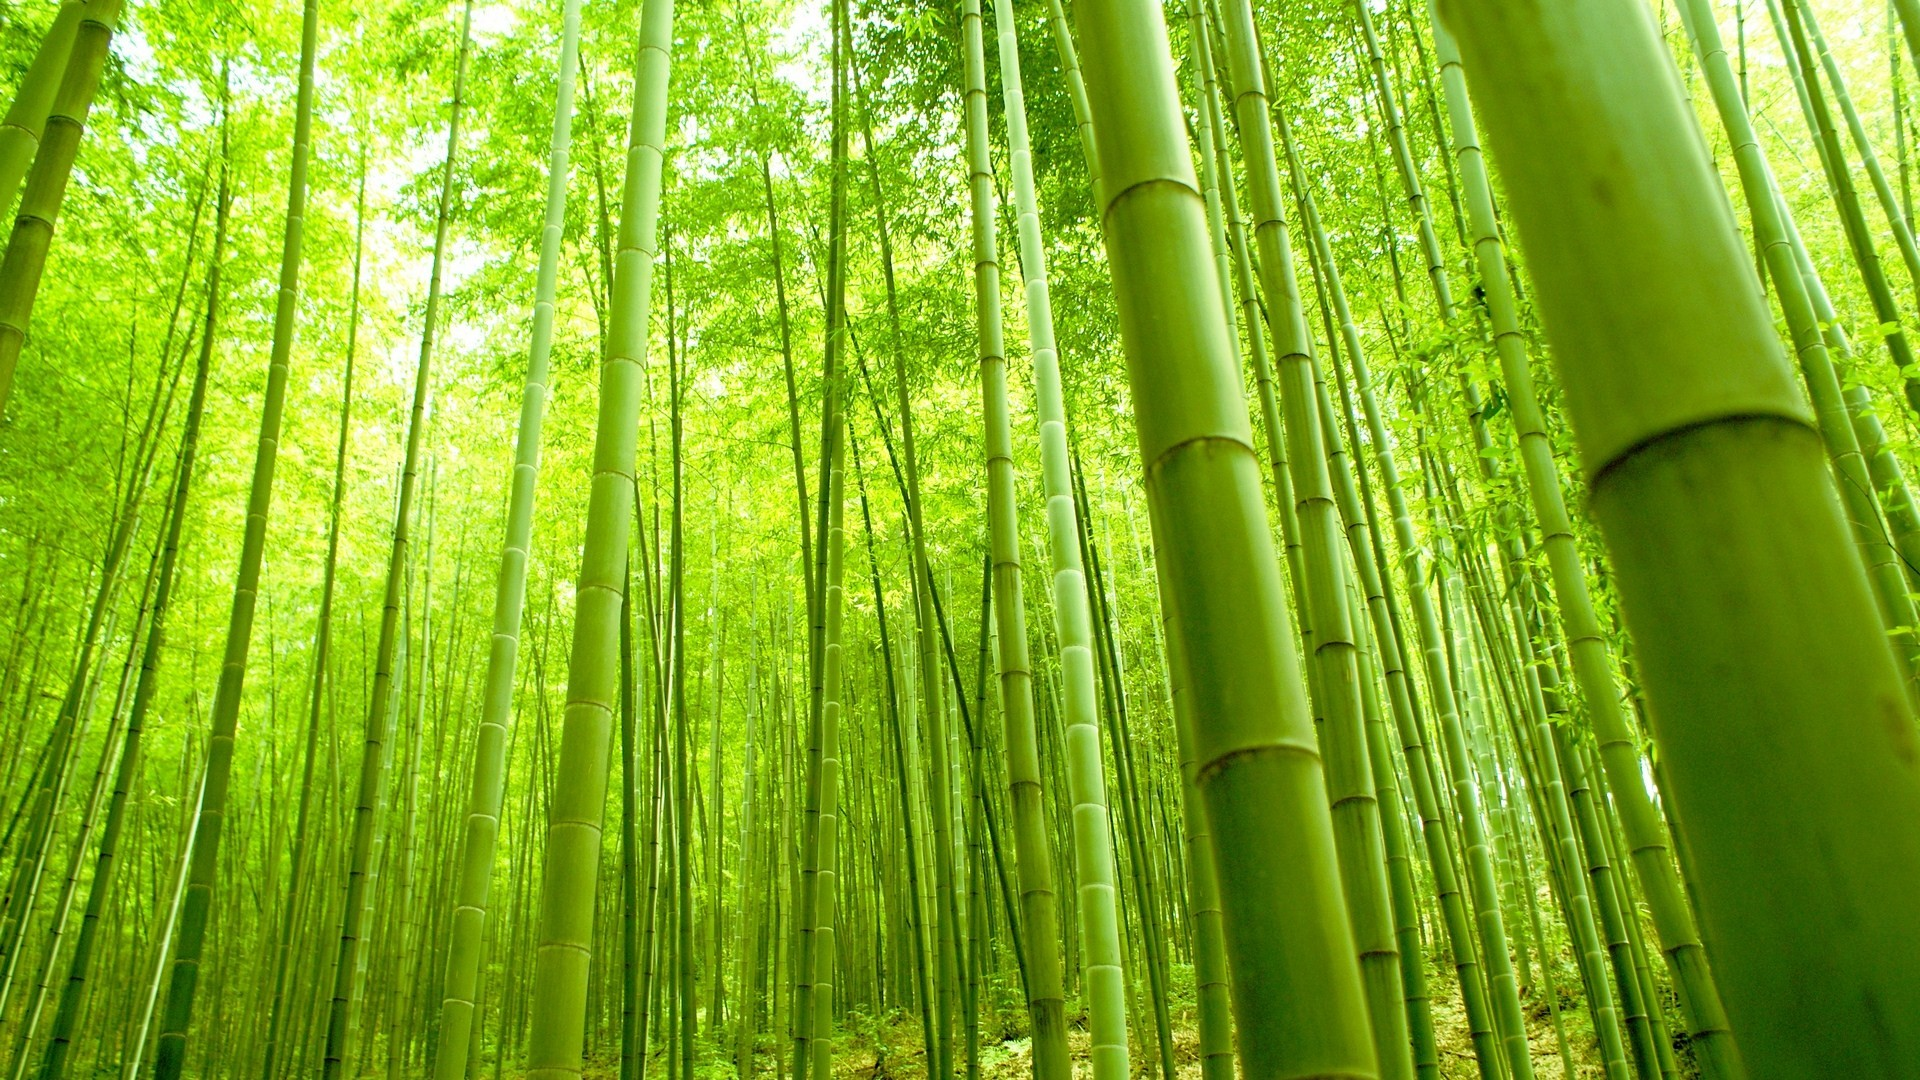 Bamboo wallpaper ·① Download free amazing wallpapers for ...